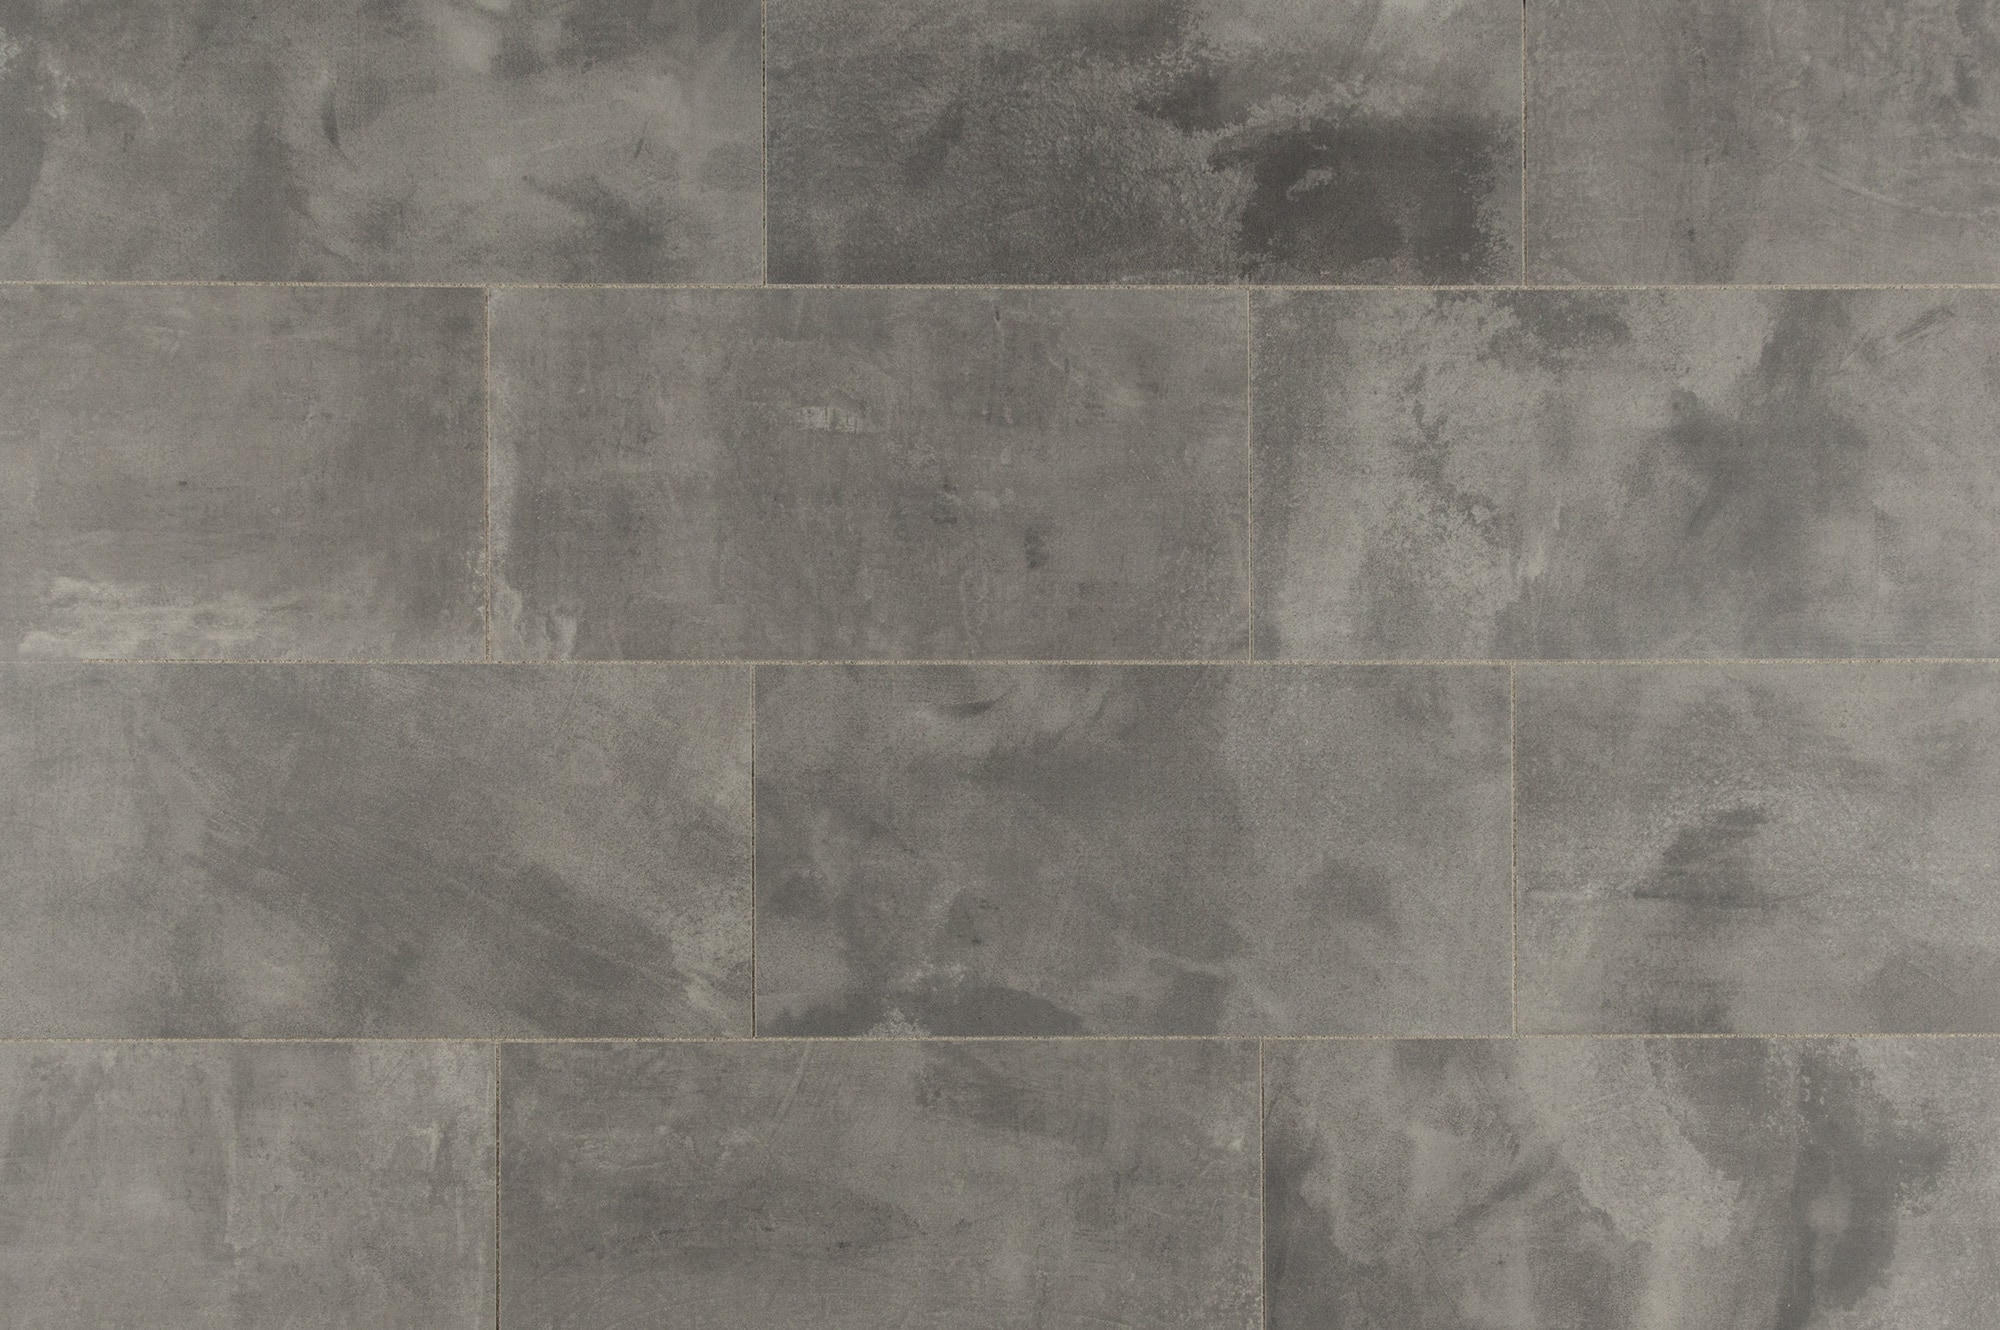 Free samples salerno porcelain tile concrete series dark gray free samples salerno porcelain tile concrete series dark gray 24x24 dailygadgetfo Gallery